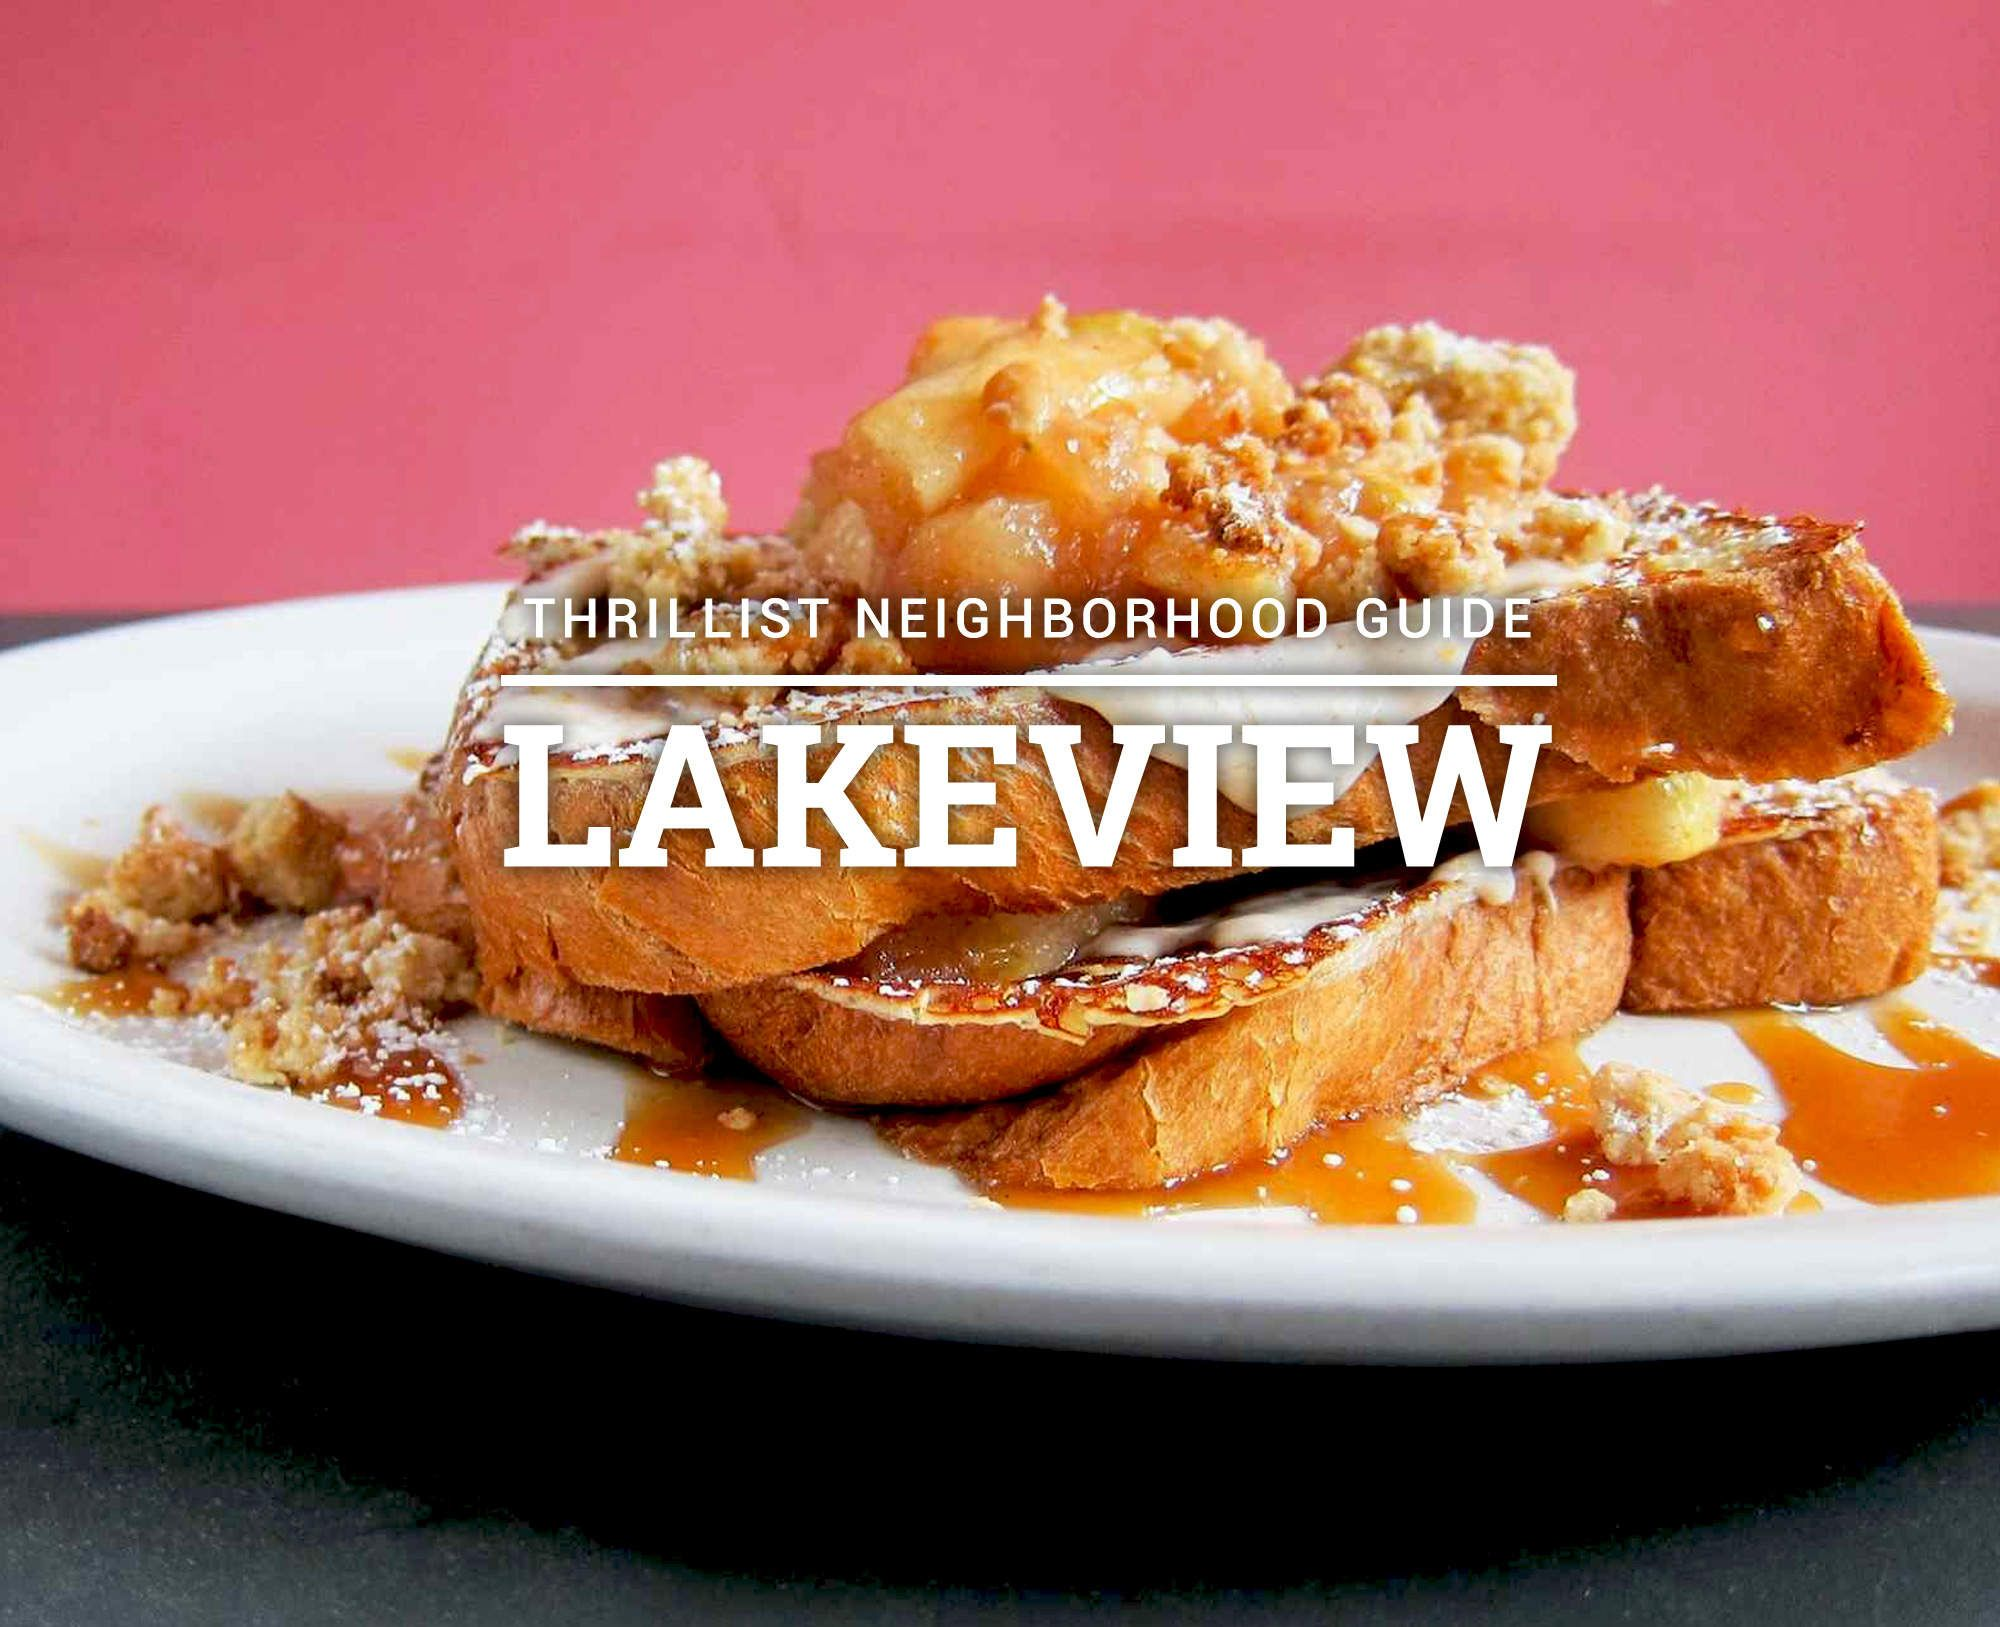 The Definitive 12 Best Restaurants In Lakeview Places To Eat Eat Chicago Eats